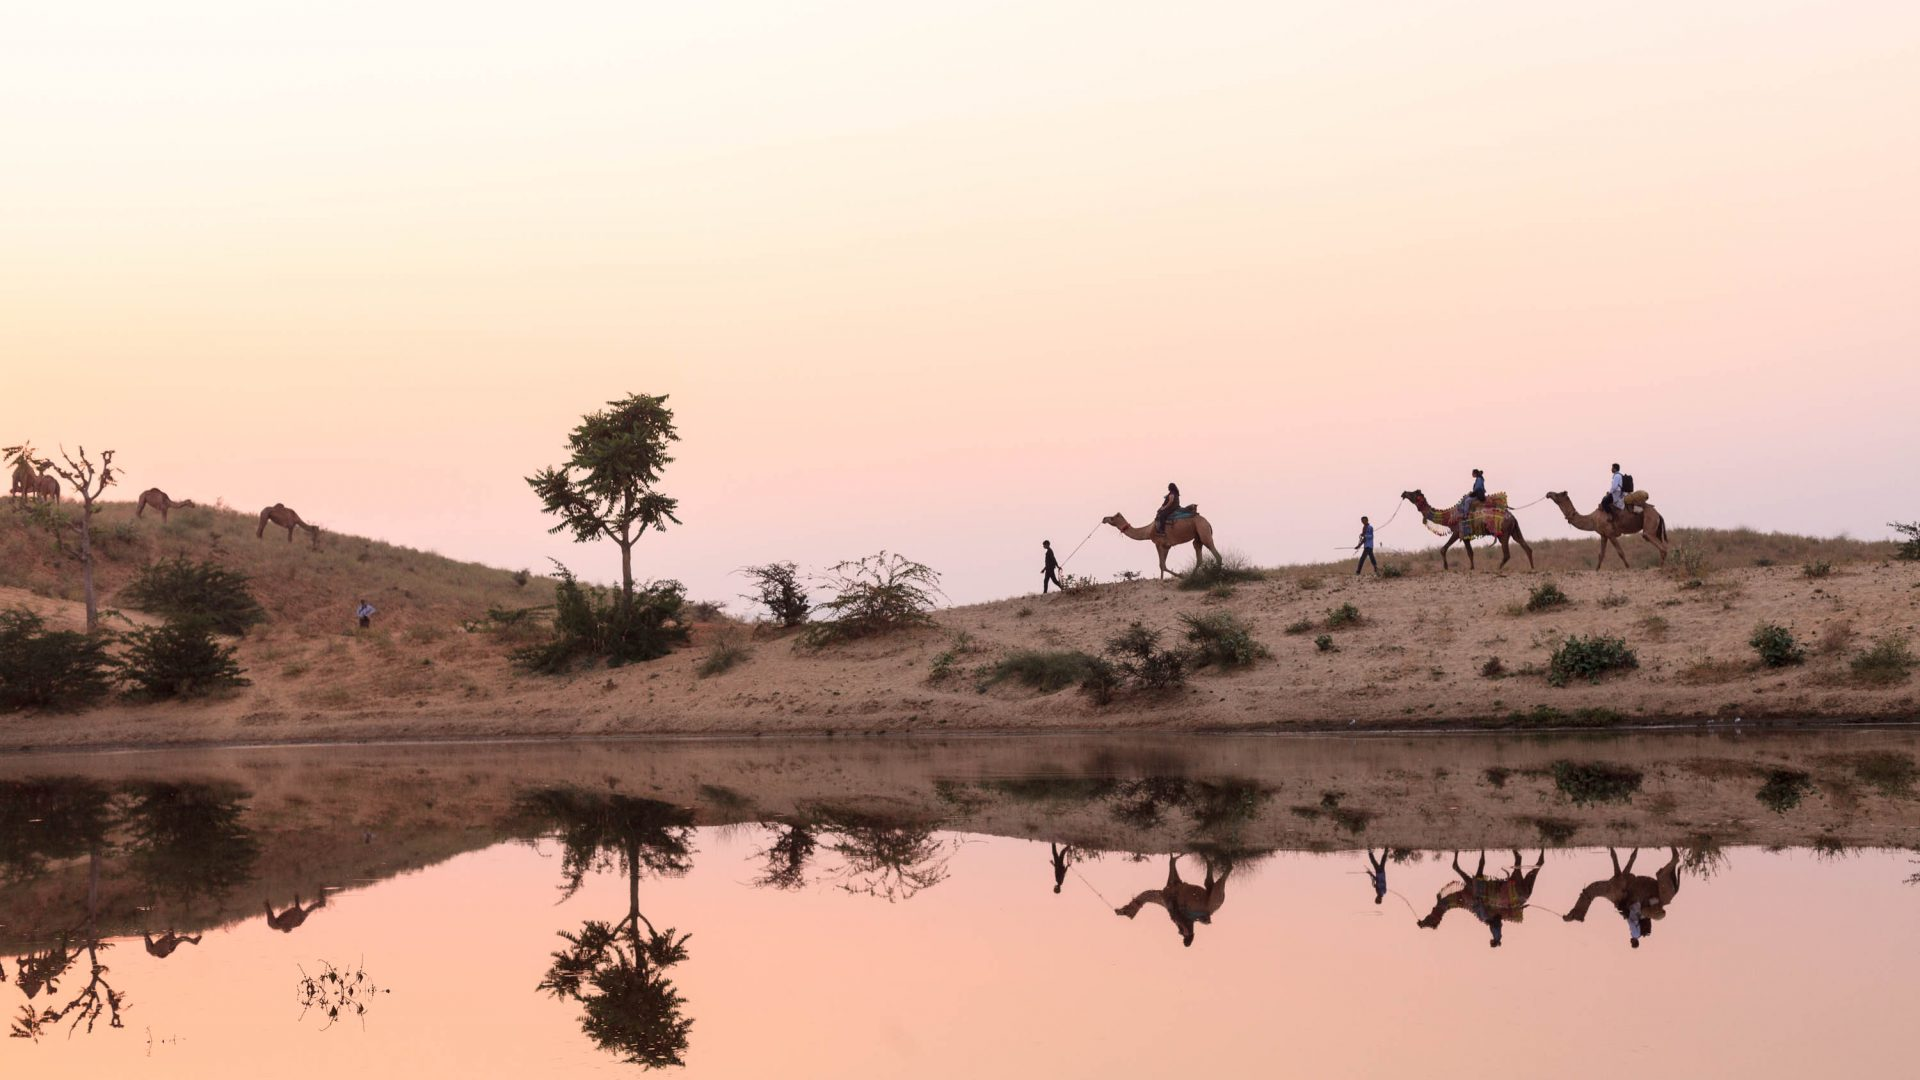 Camels reflected in a small desert oasis on the dunes of Pushkar.